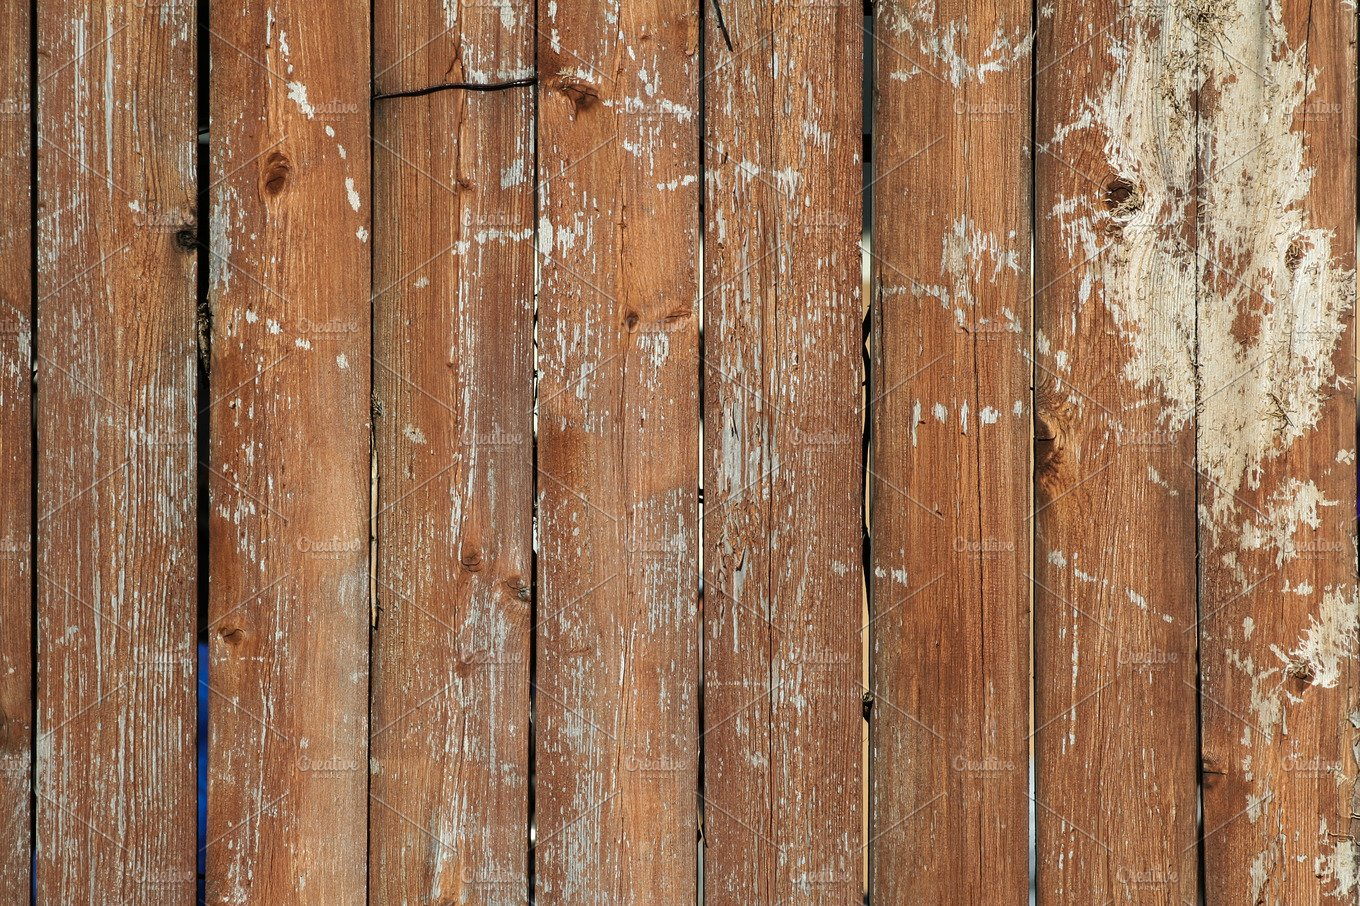 Weathered Wood Fence Background ~ Textures ~ Creative Market